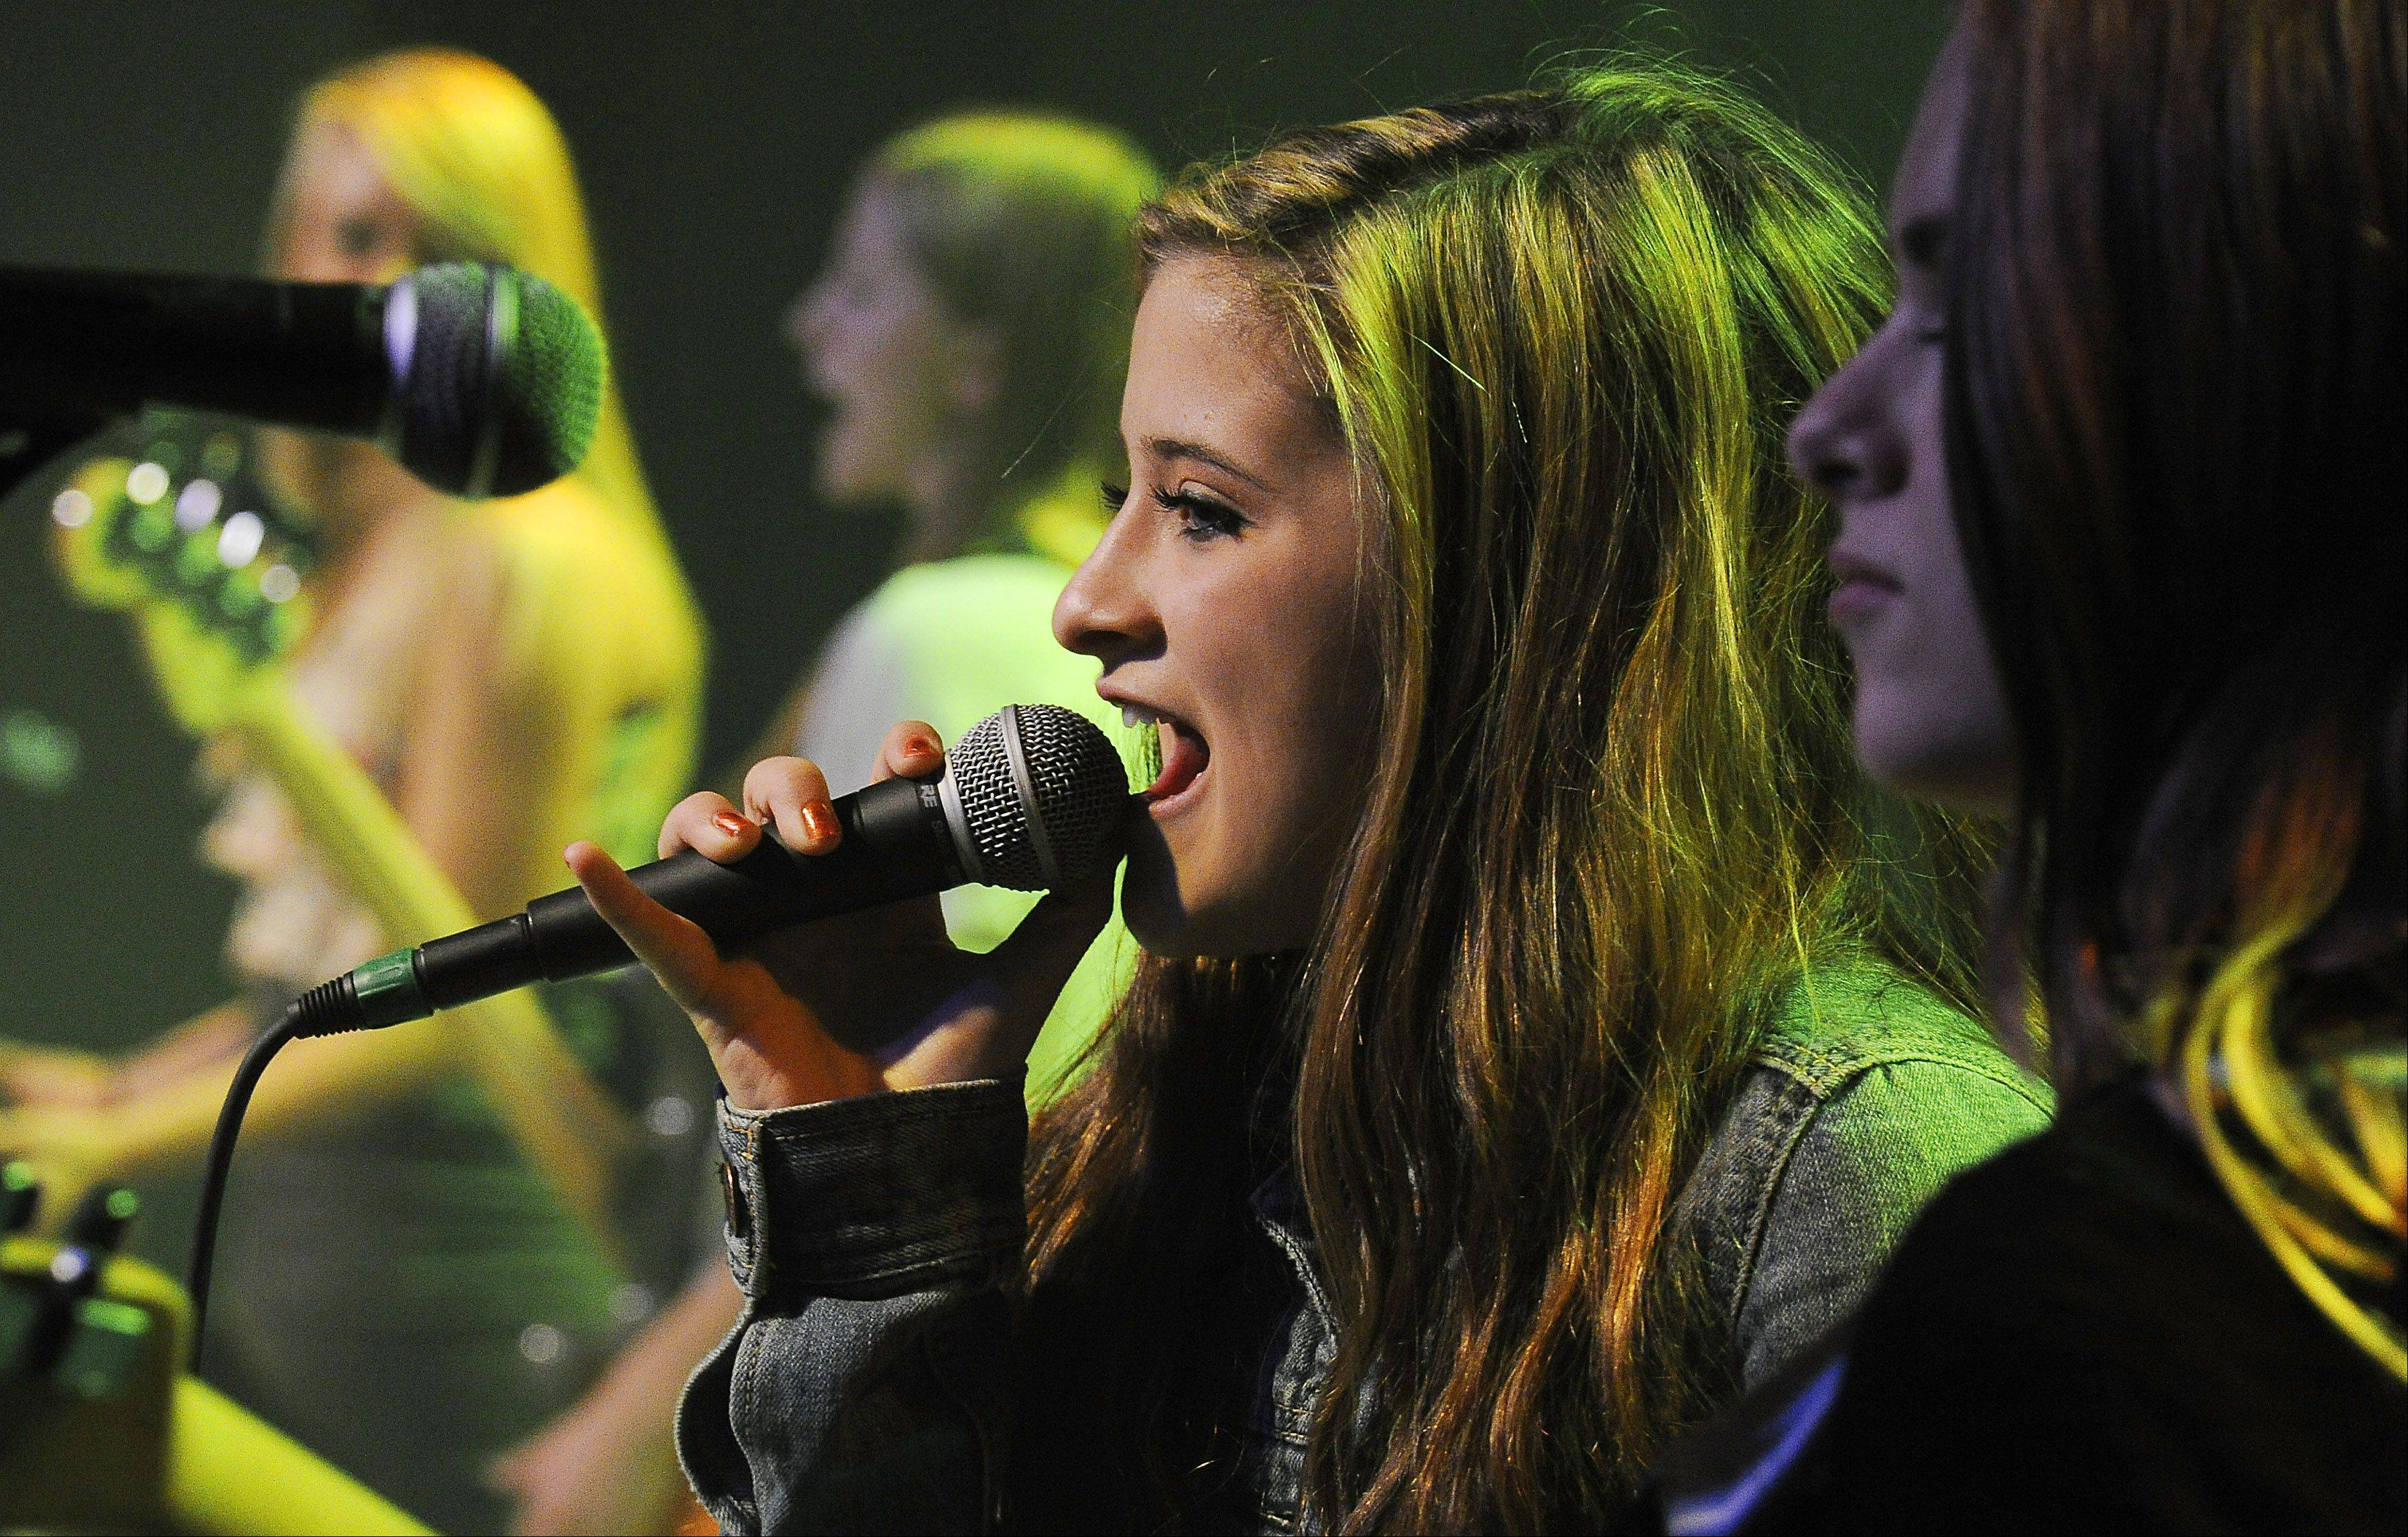 Serendipity lead singer Josie Treffy, 15, of South Elgin, sings for her fans at Durty Nellie's in Palatine.